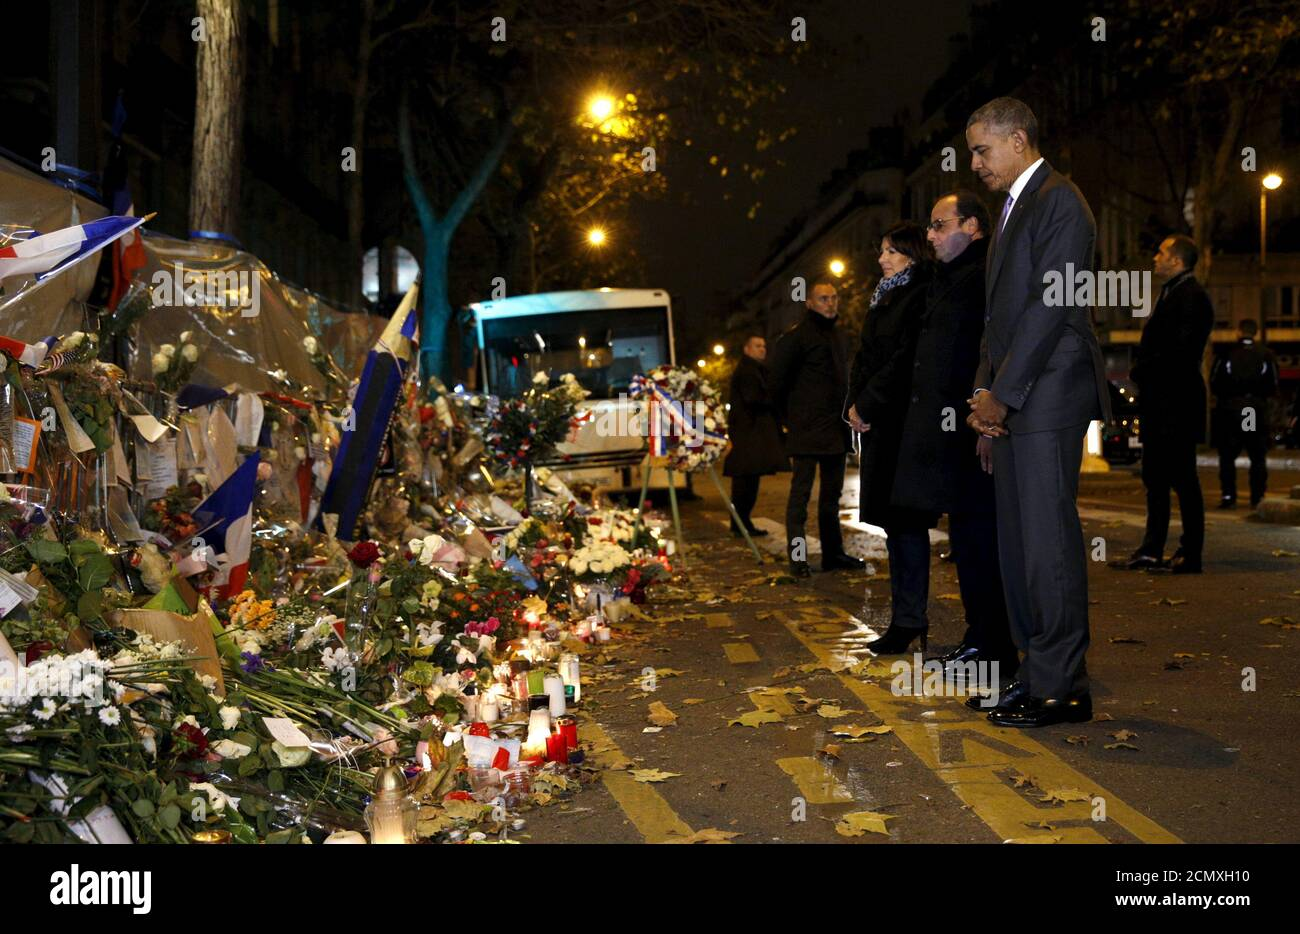 Paris Mayor Anne Hidalgo, French President Francois Hollande and U.S. President Barack Obama bow their heads as they visit a makeshift memorial to pay tribute to the victims of the Paris attacks  at the Bataclan in Paris  November 30, 2015.  REUTERS/Kevin Lamarque Stock Photo